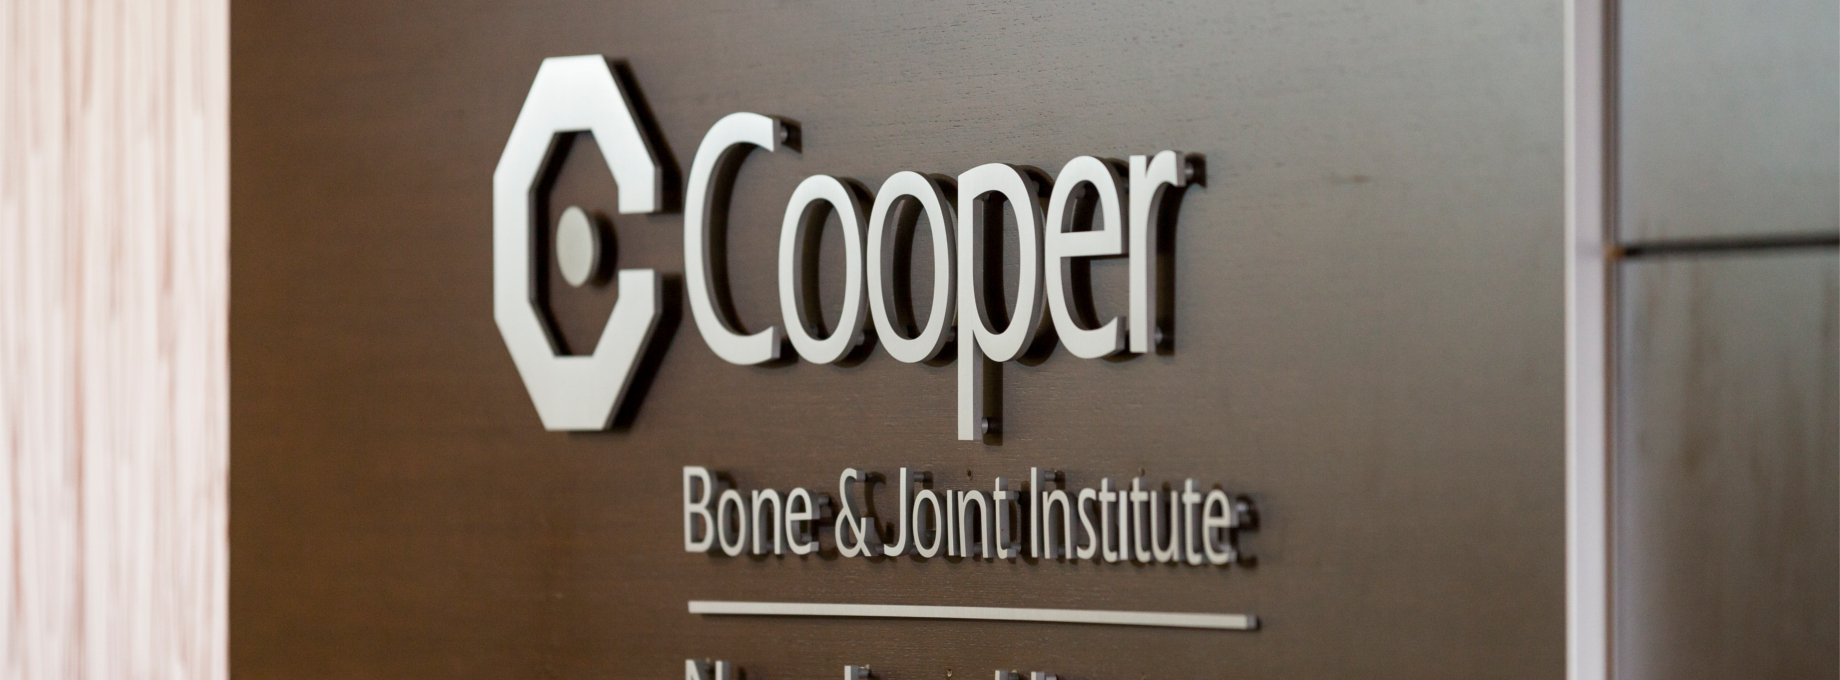 Cooper Bone and Joint Wall Signage